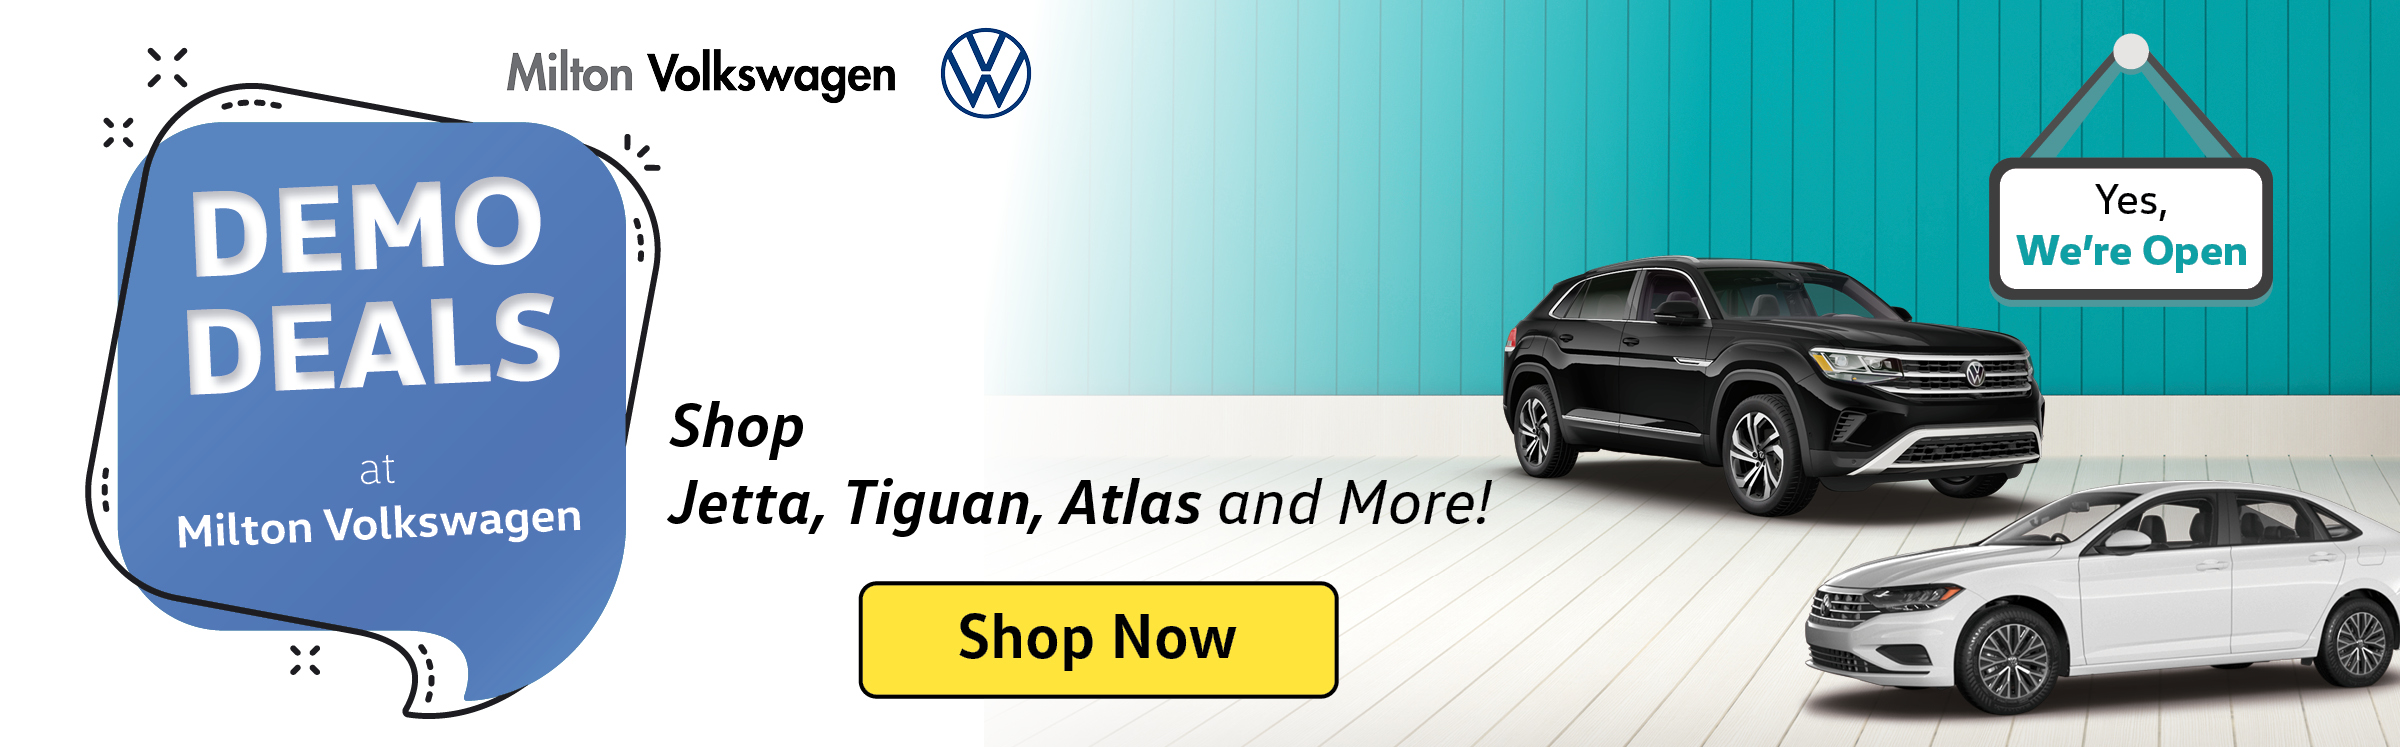 499a 21 Vw Banners (1)